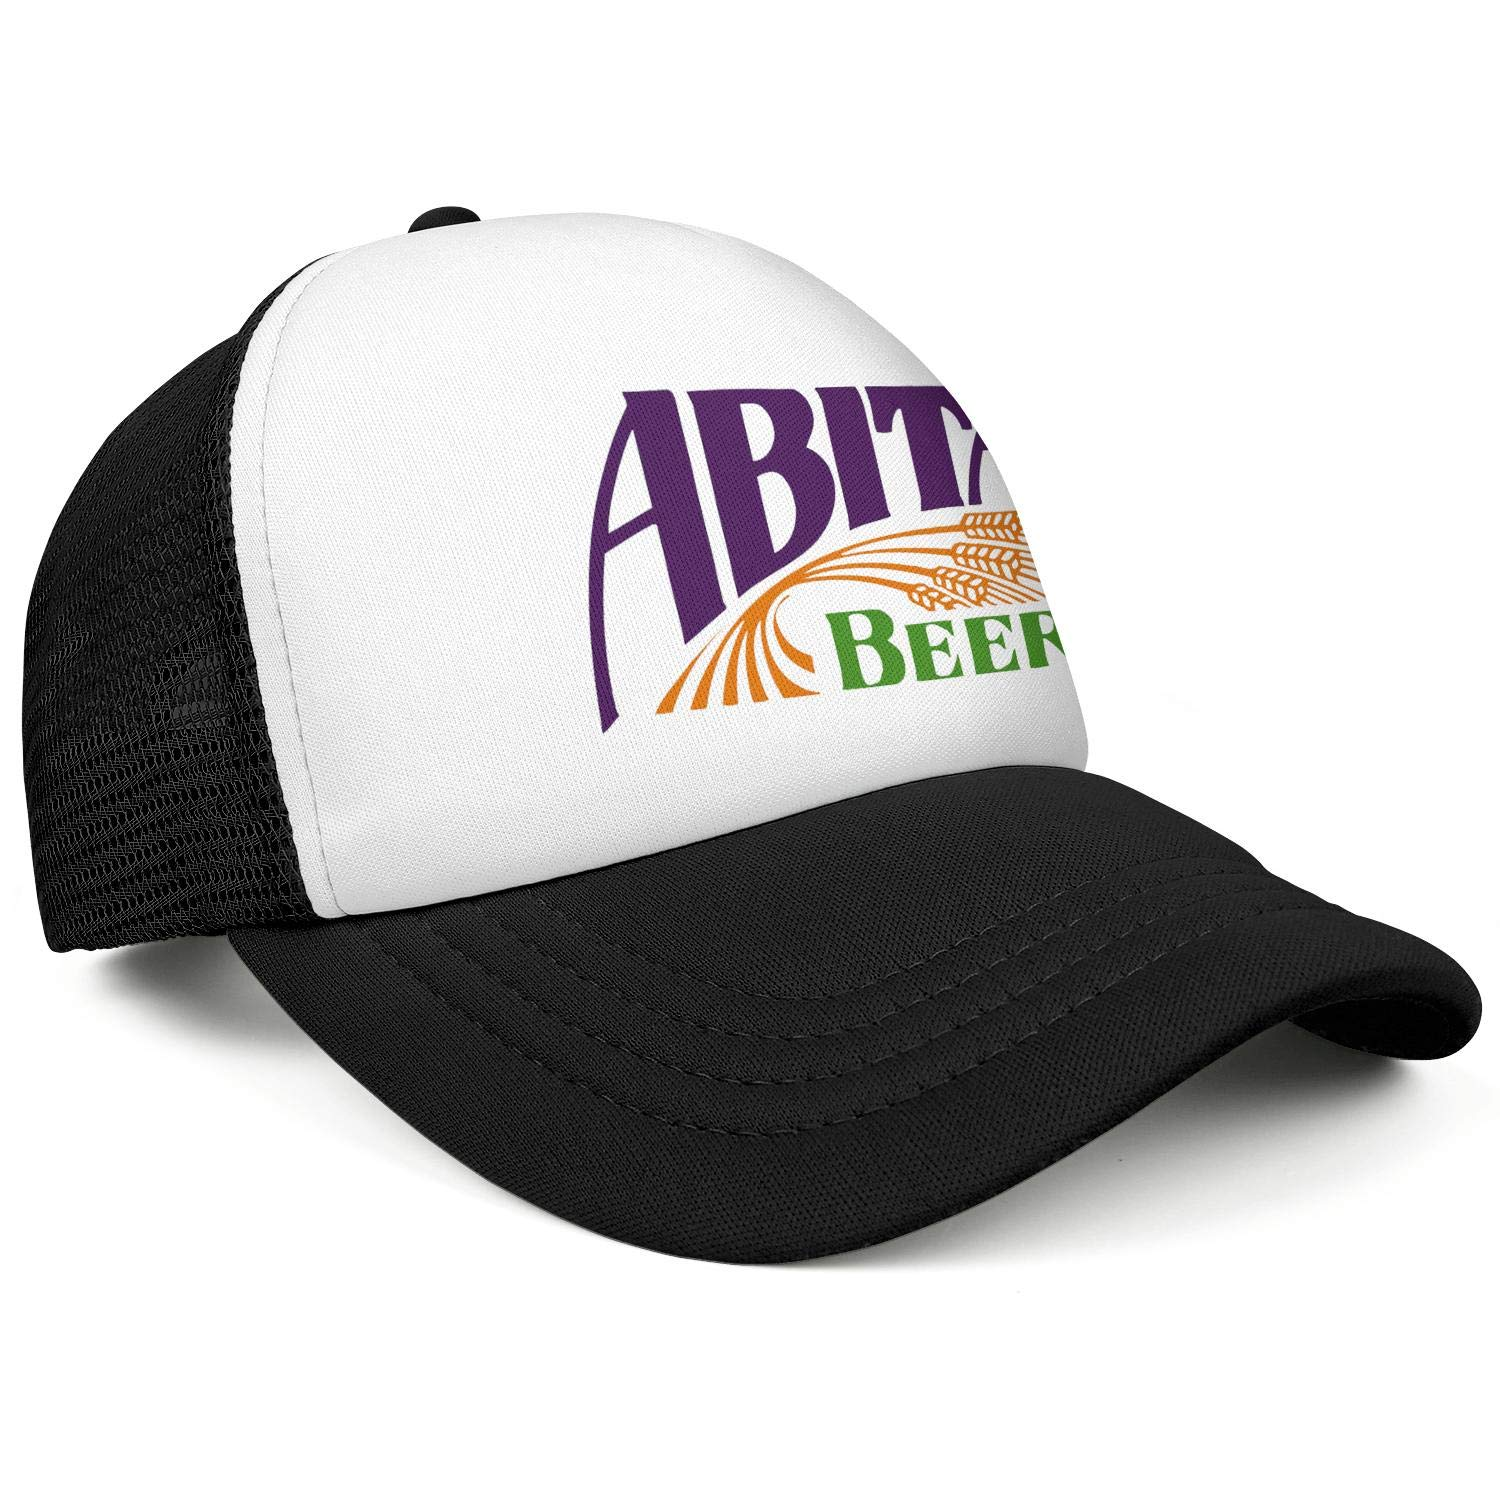 Mens Abita-Brewing-Logo Adjustable Baseball Cap Classic Trucker Hat Cotton Trendcaps